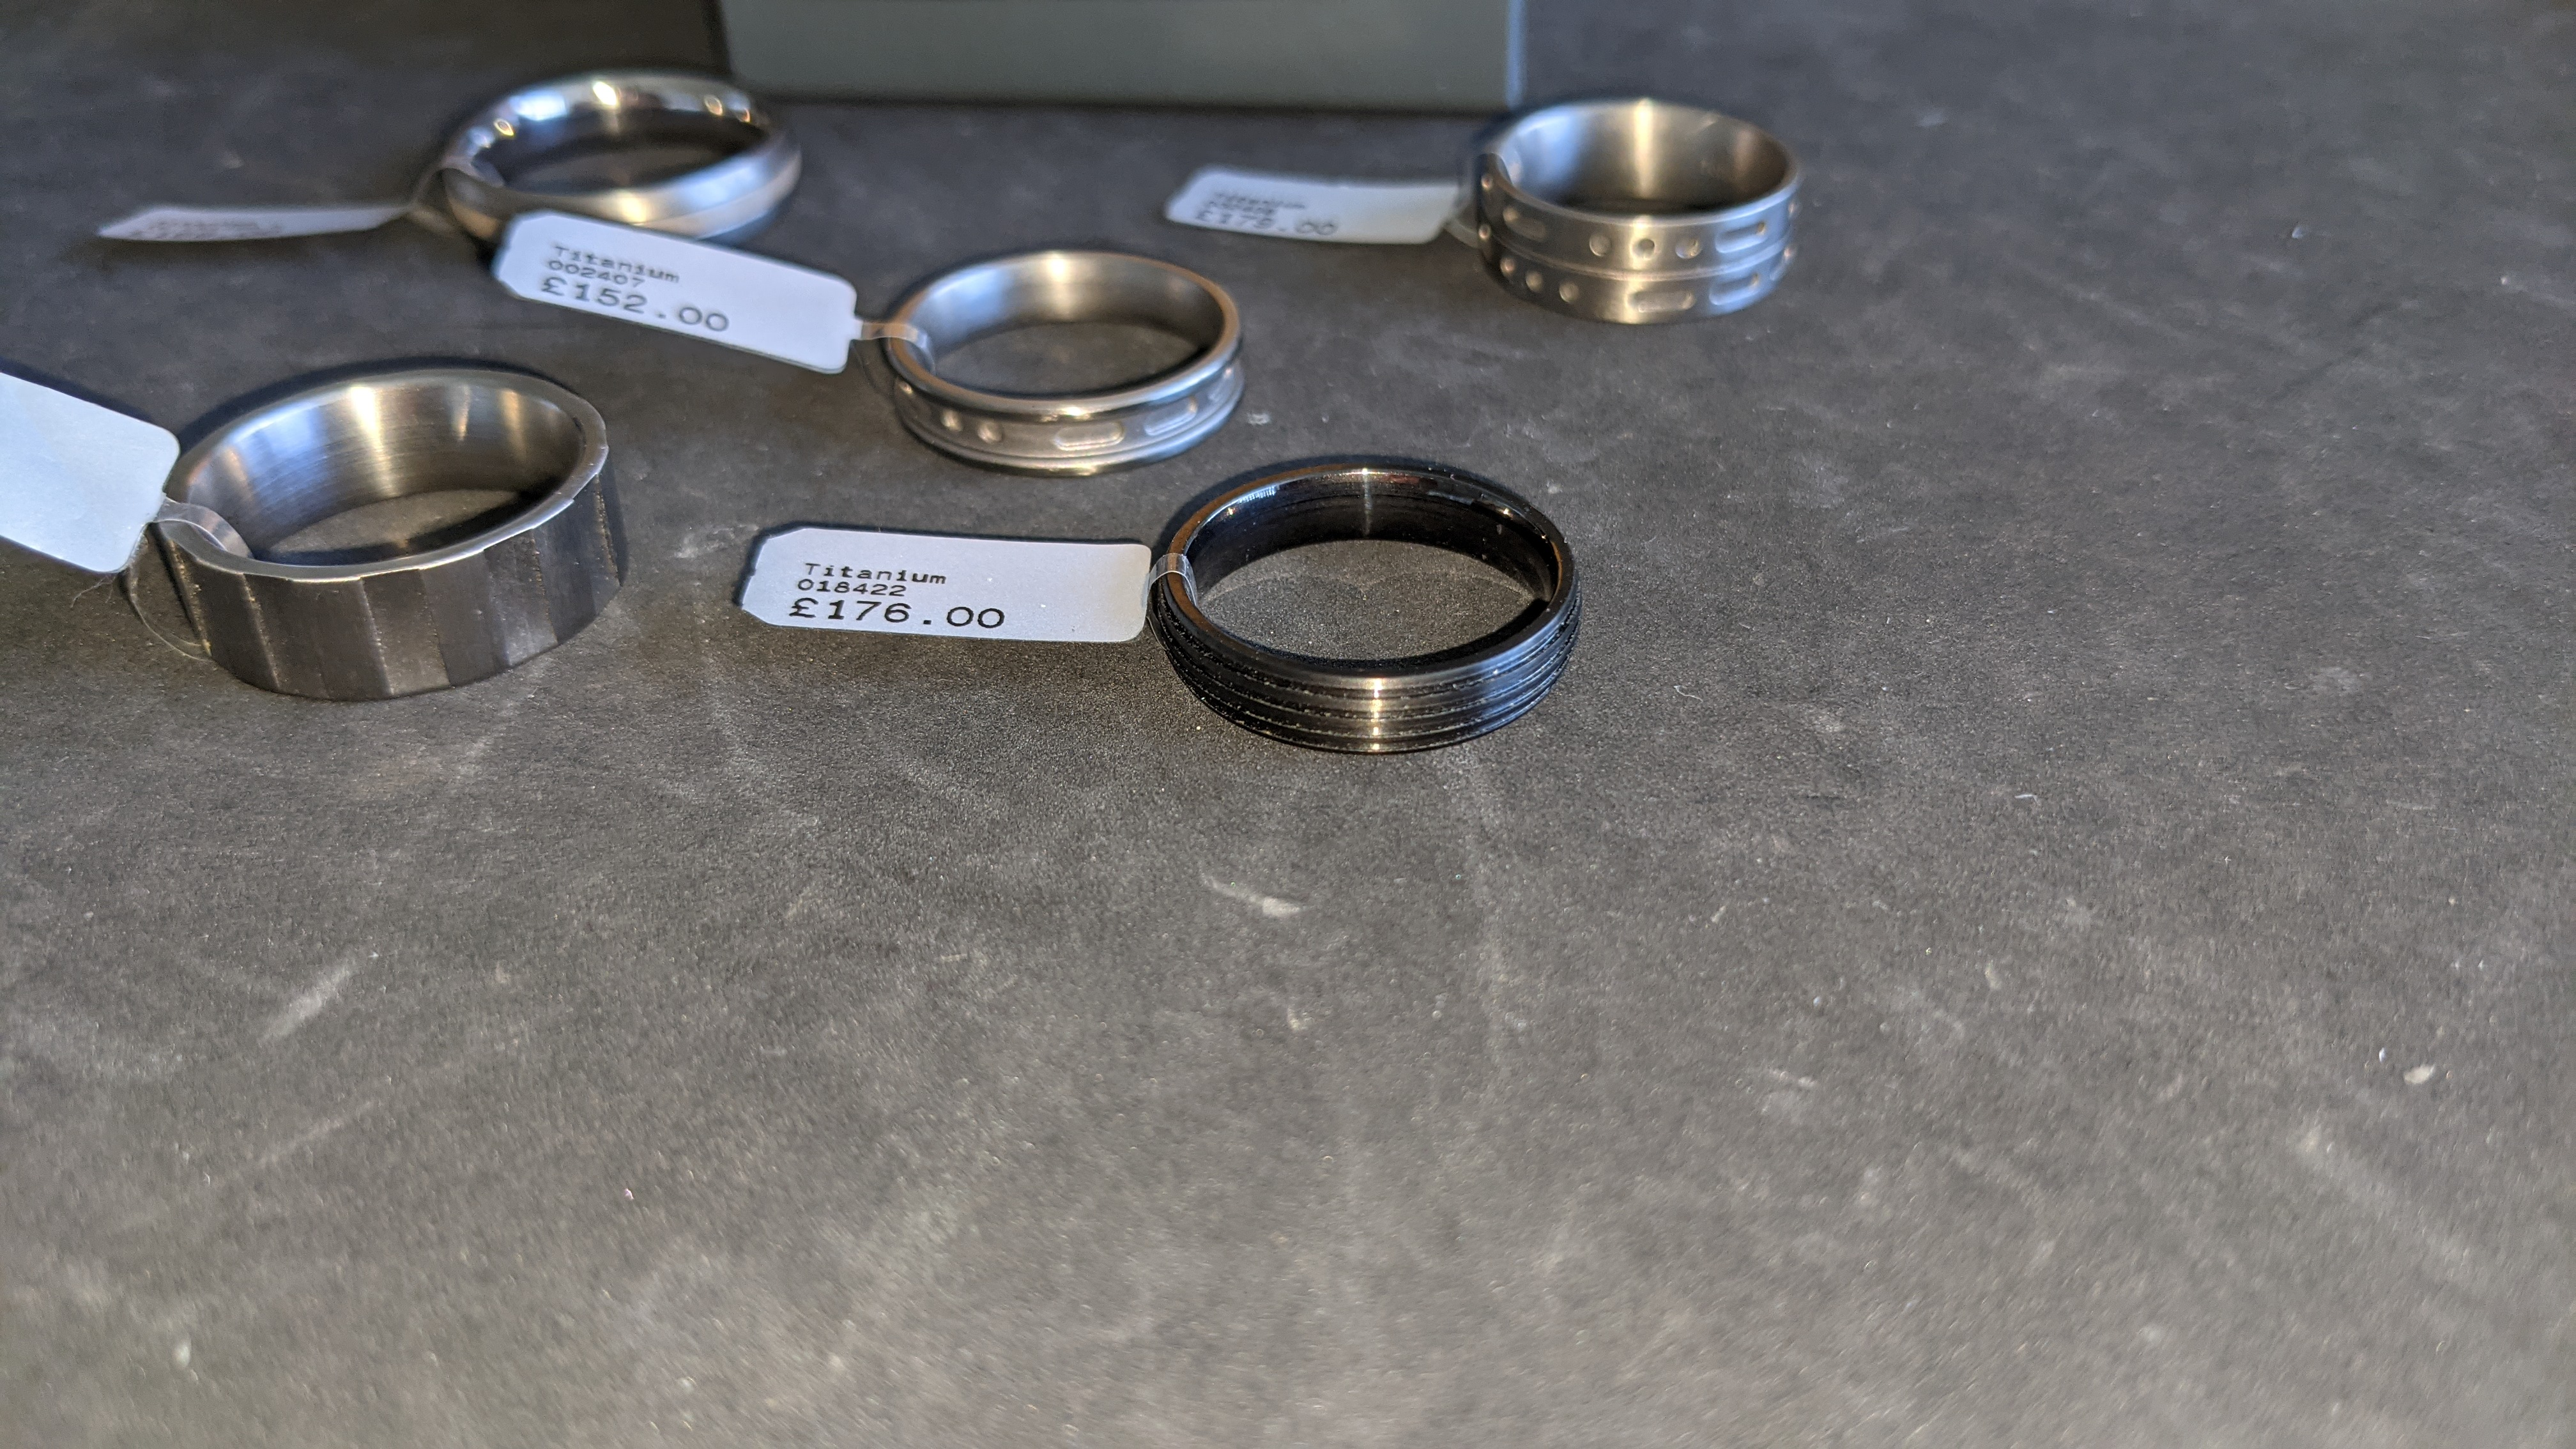 5 off assorted titanium rings with RRP from £109 - £179 per ring. Total RRP is £785 - Image 7 of 13